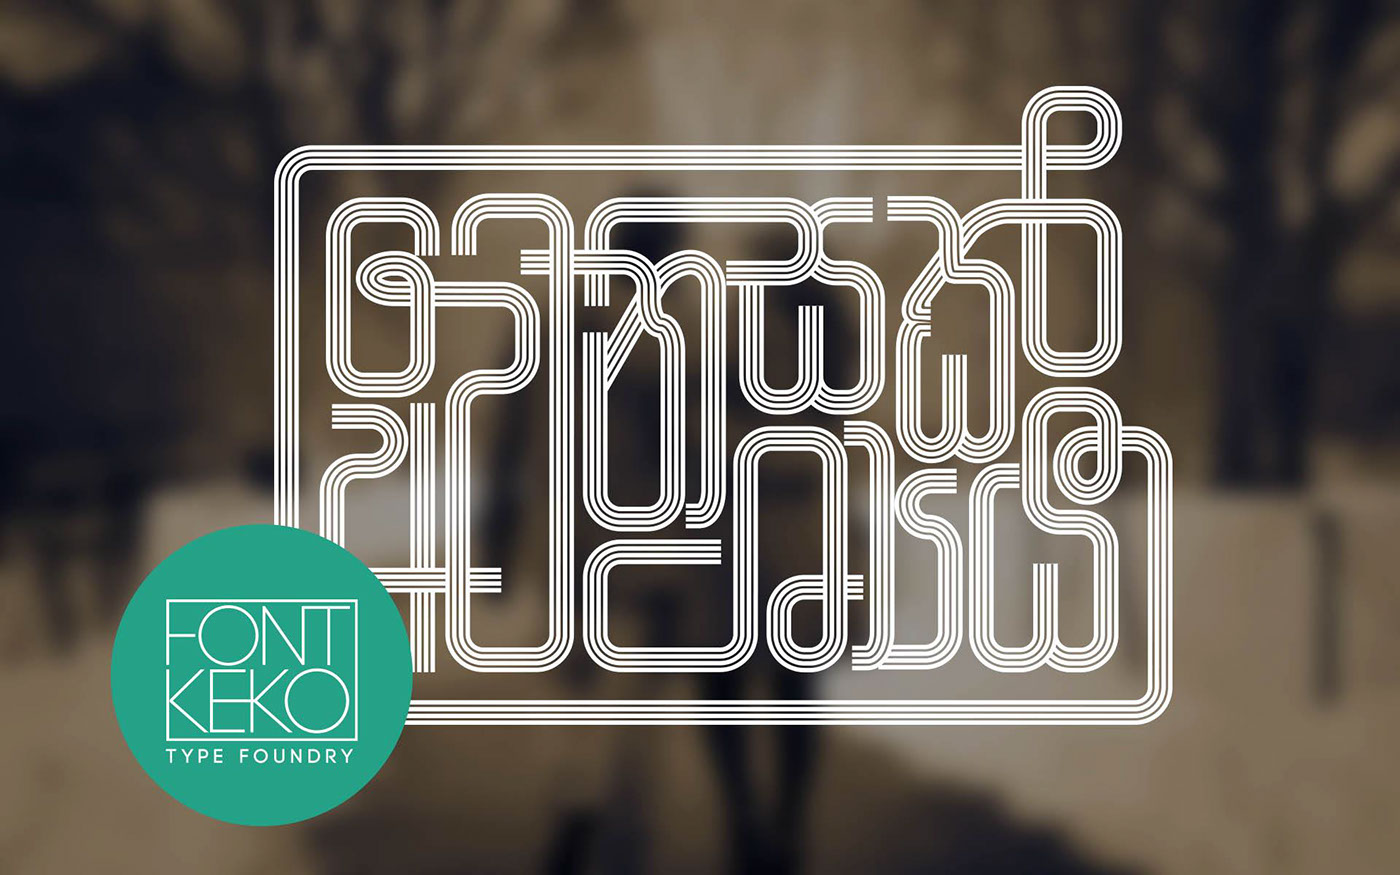 Font Keko-Sinhala Font Design on Behance